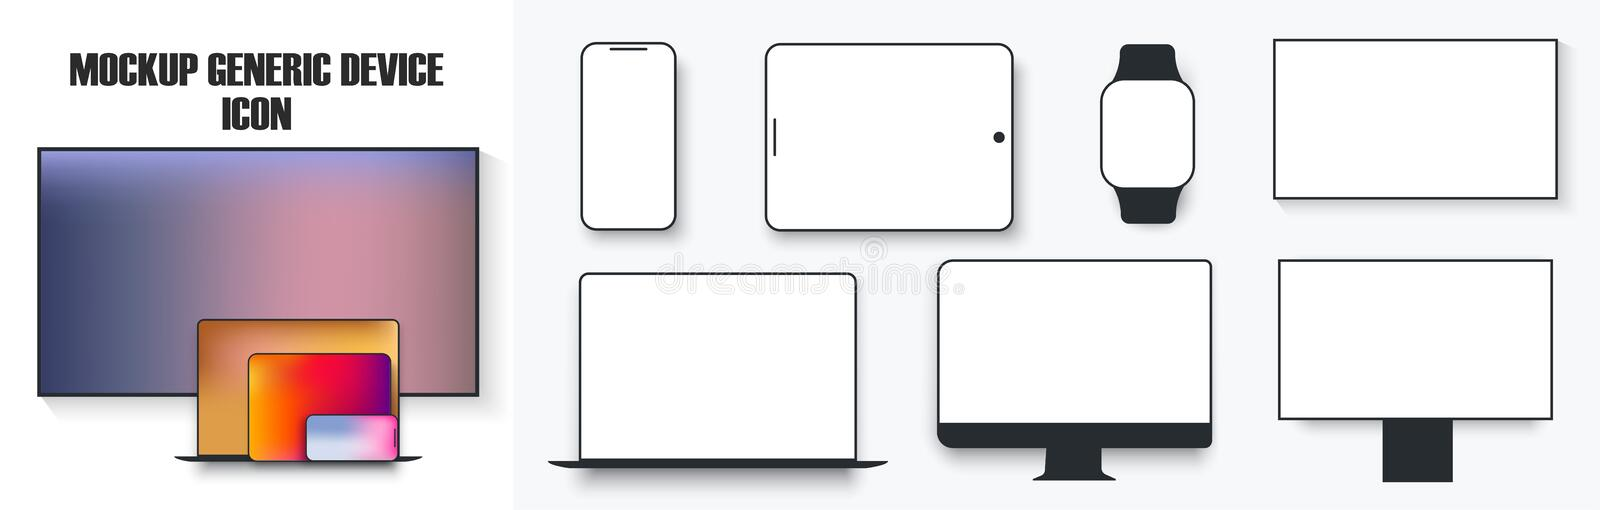 White desktop computer display screen smartphone tablet portable notebook or laptop and tv icon. Outline mockup. Electronics devices phone monitor lines simple royalty free illustration